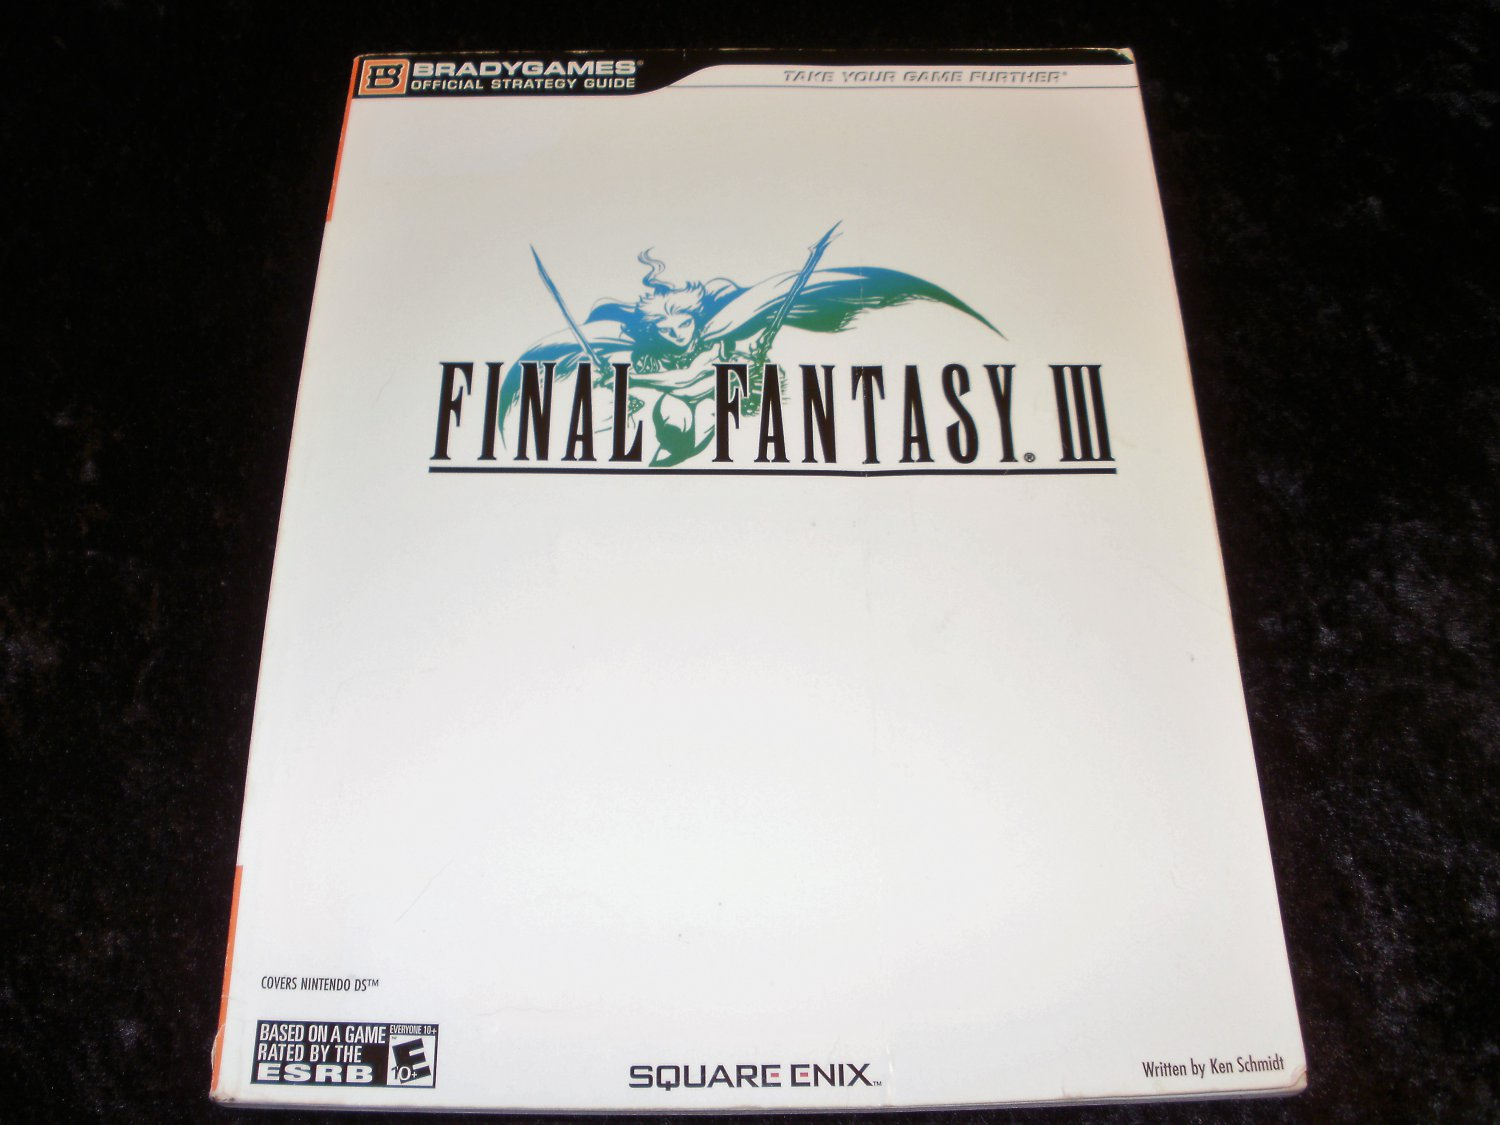 Final Fantasy III Official Strategy Guide - Bradygames (2006) - Paperback